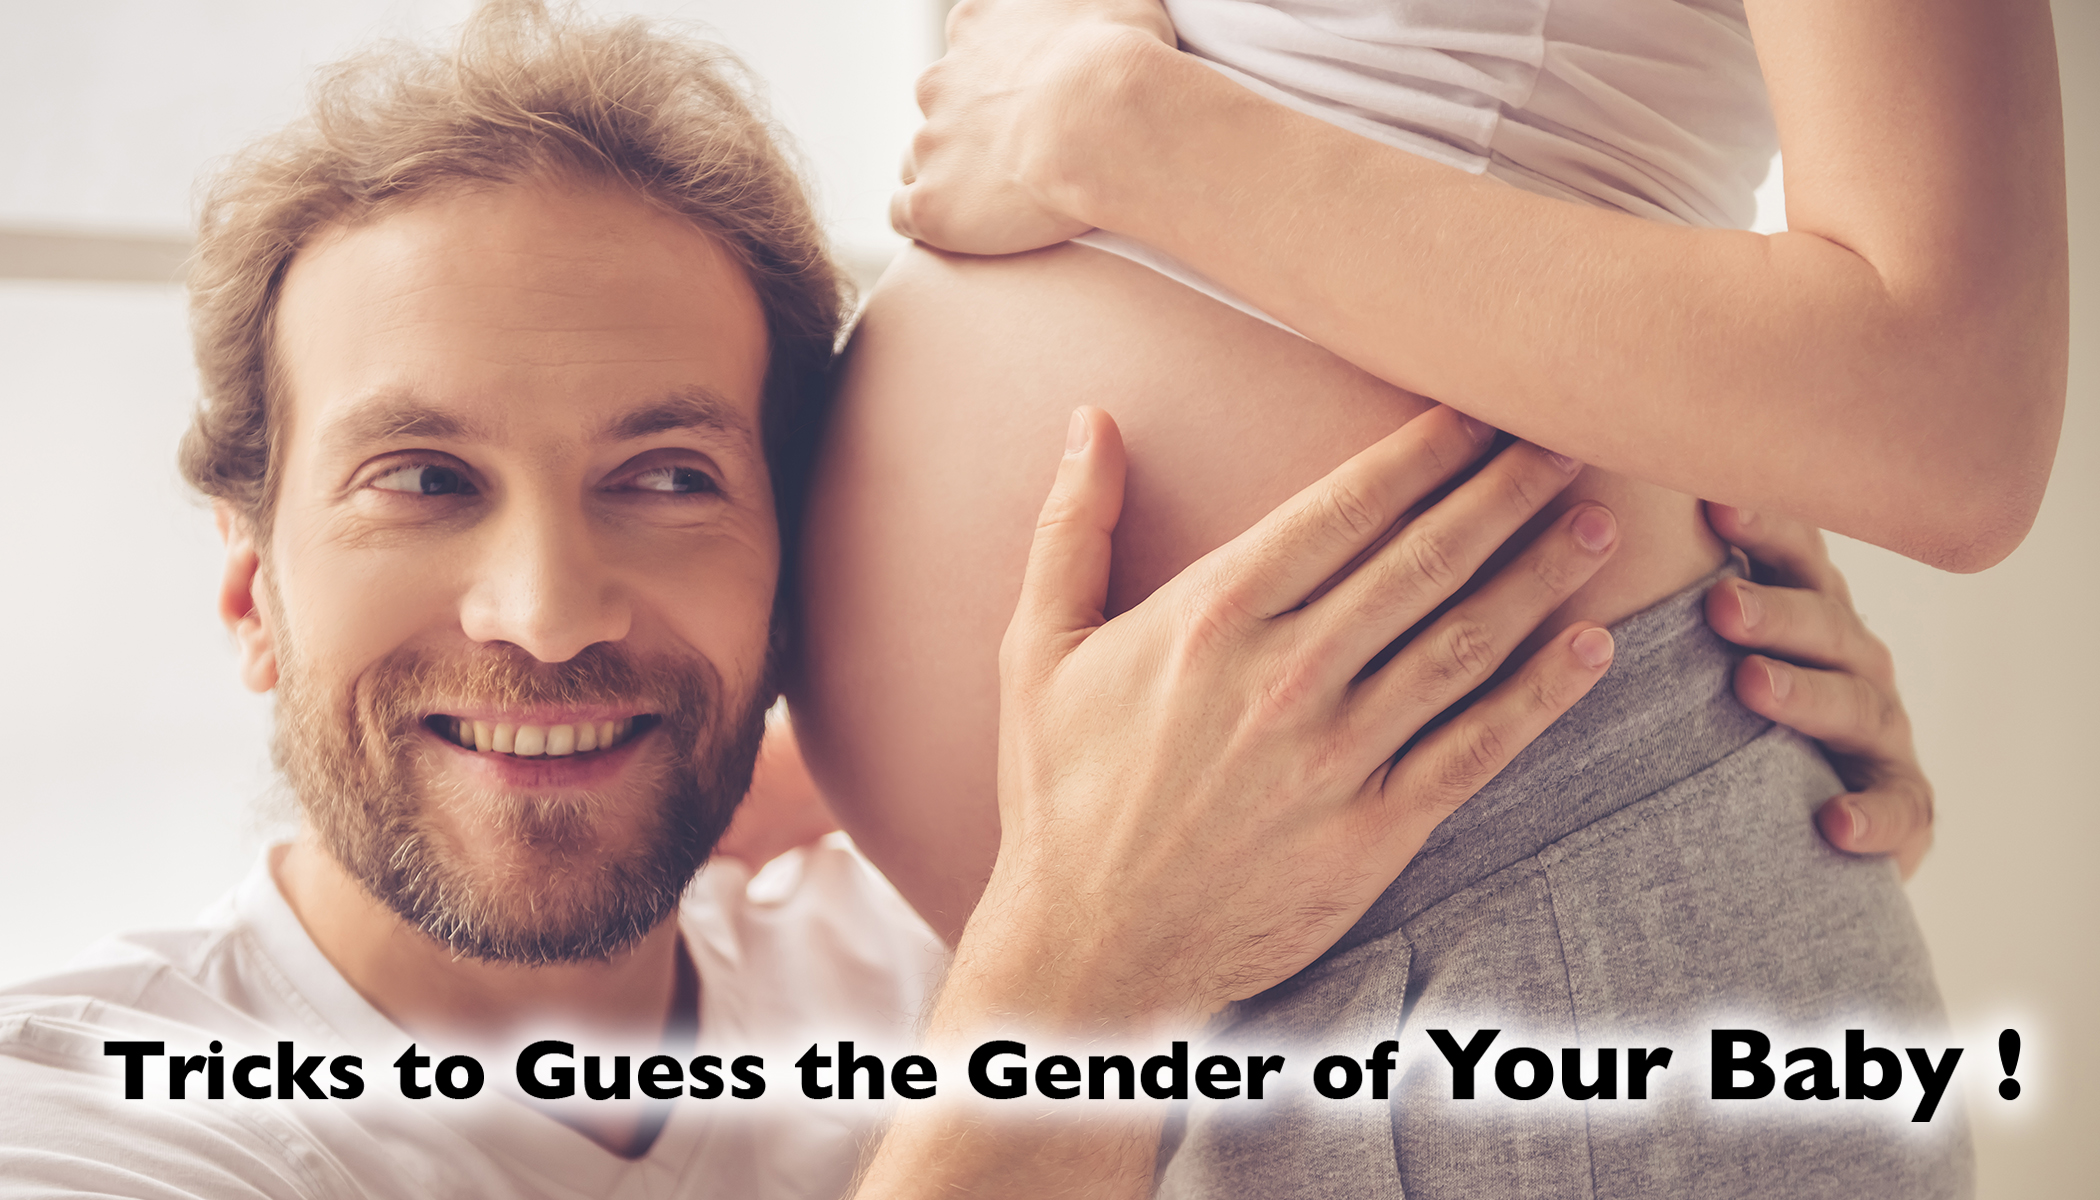 10+ Tricks to Predict the Gender of Your Unborn Baby